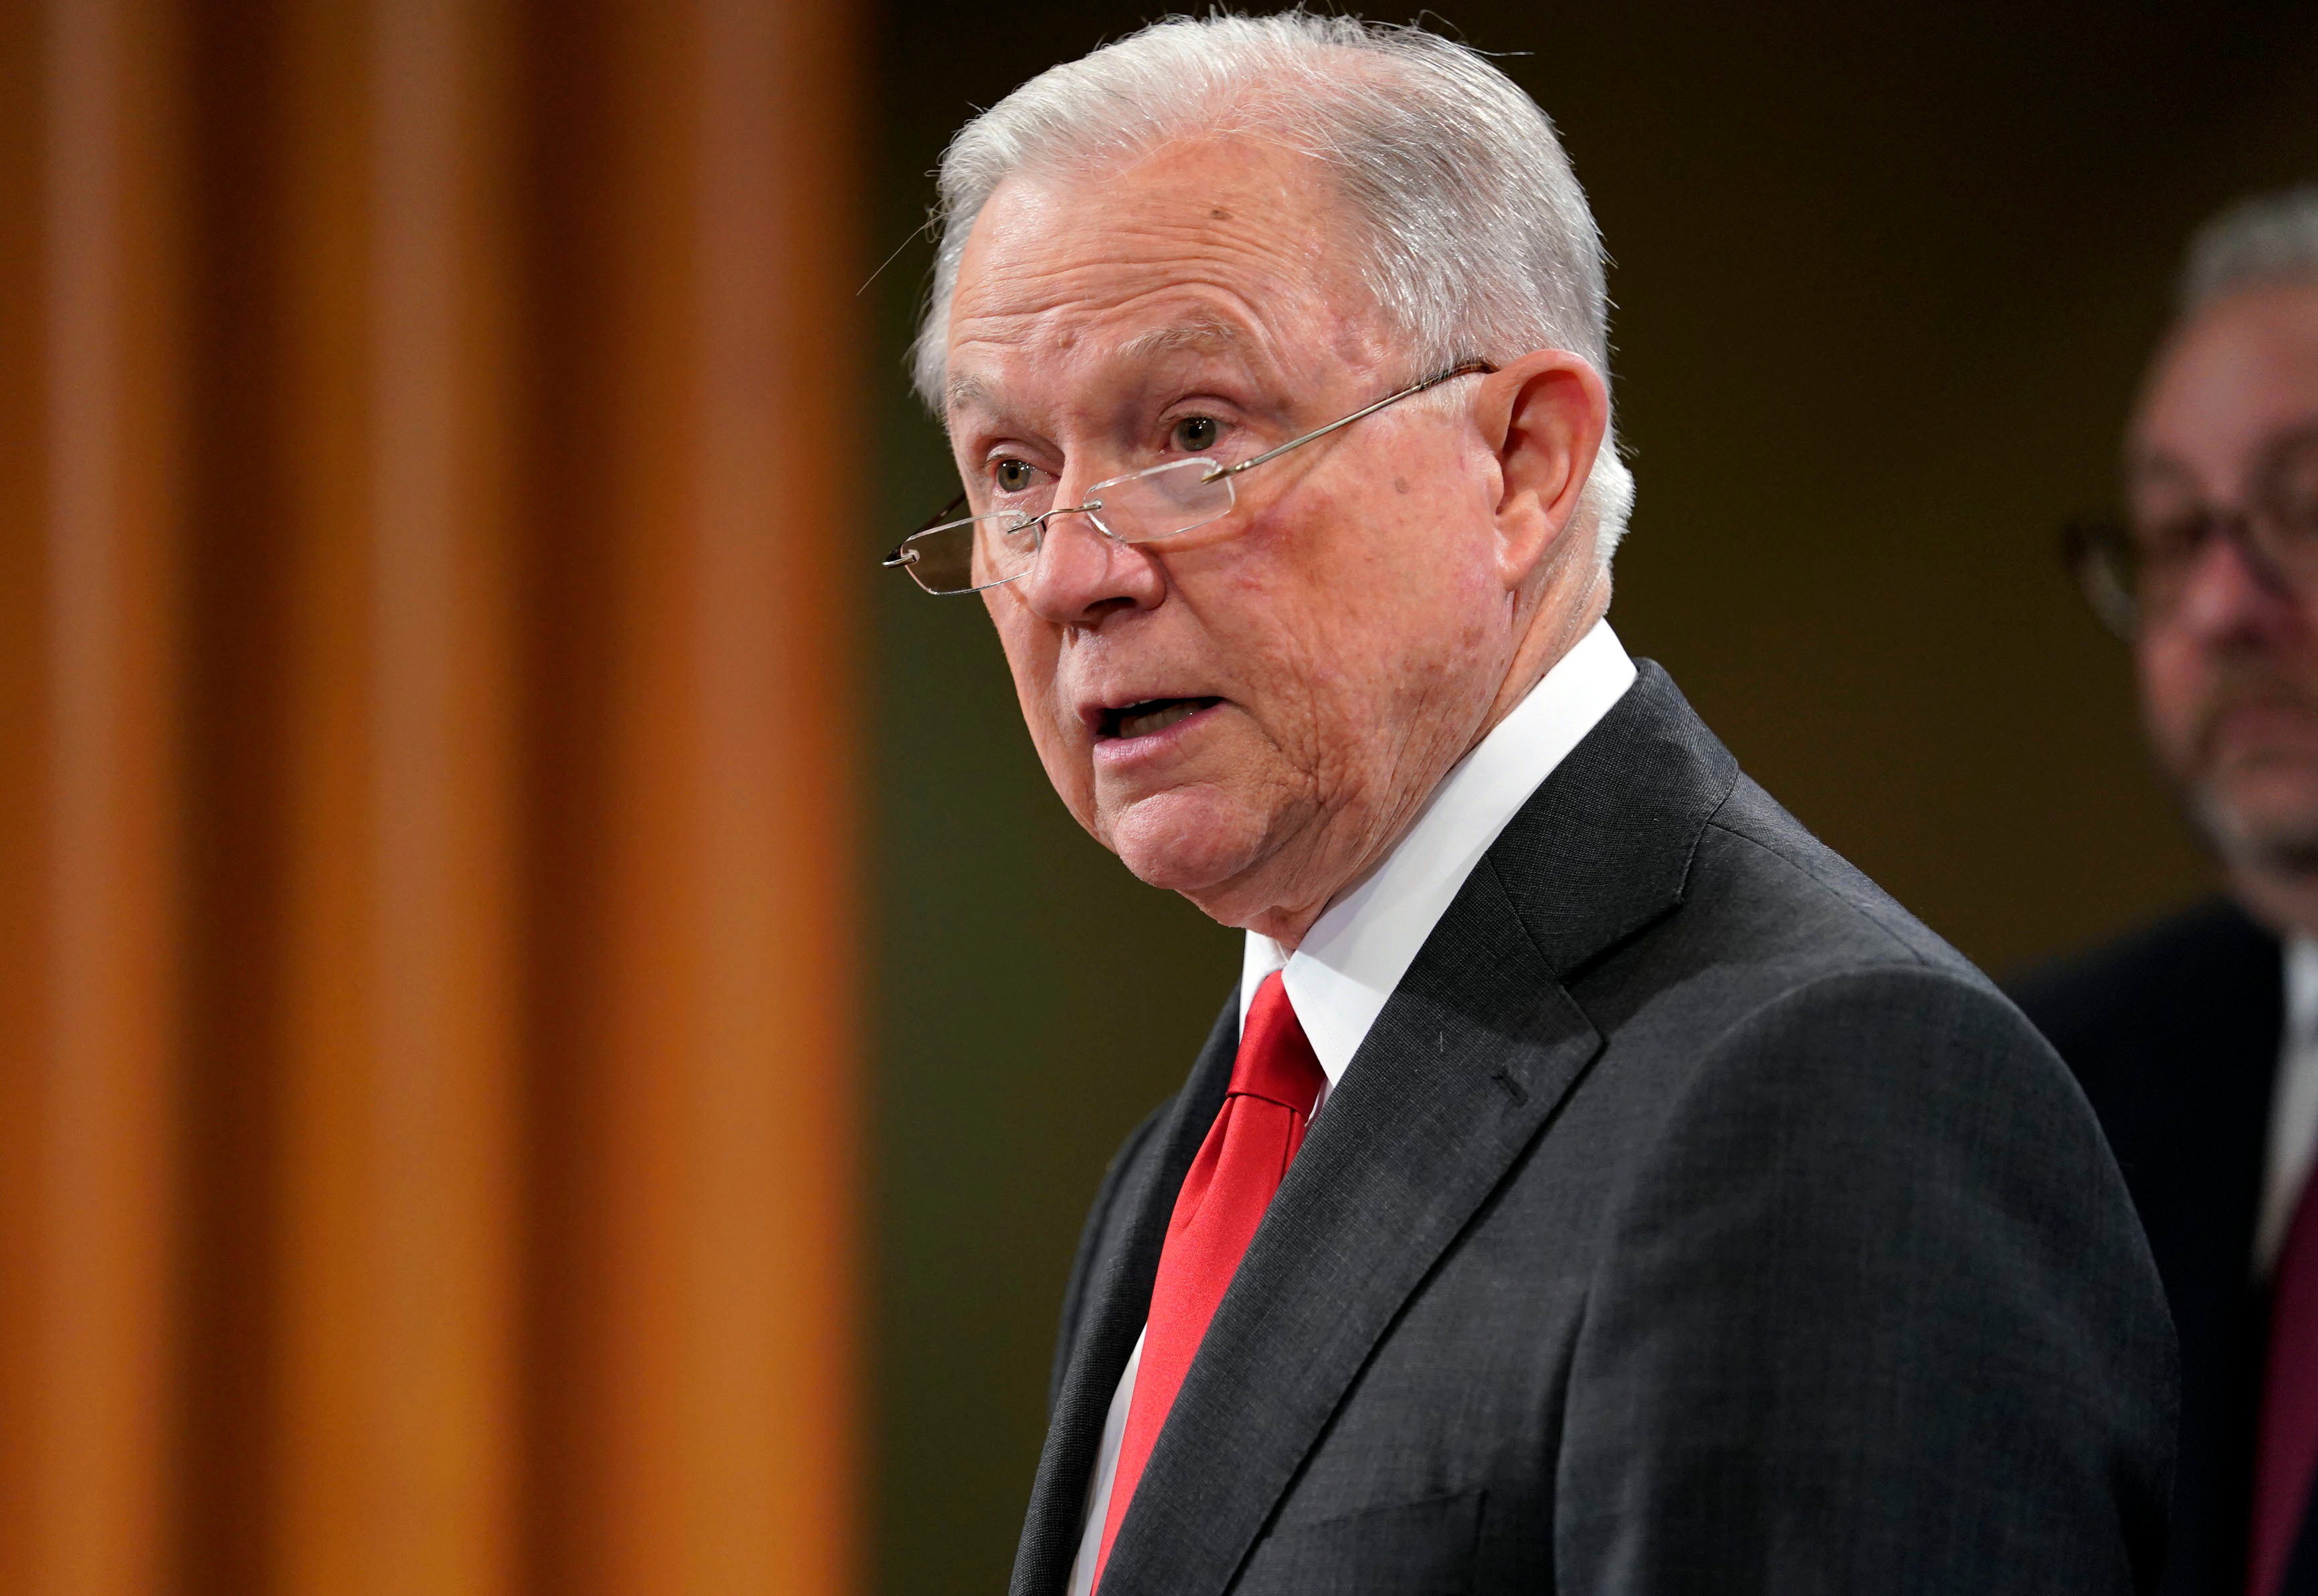 Attorney General Jeff Sessions speaks during a news conference in Washington on Nov. 1, 2018. Sessions resigned from the position on Wednesday.